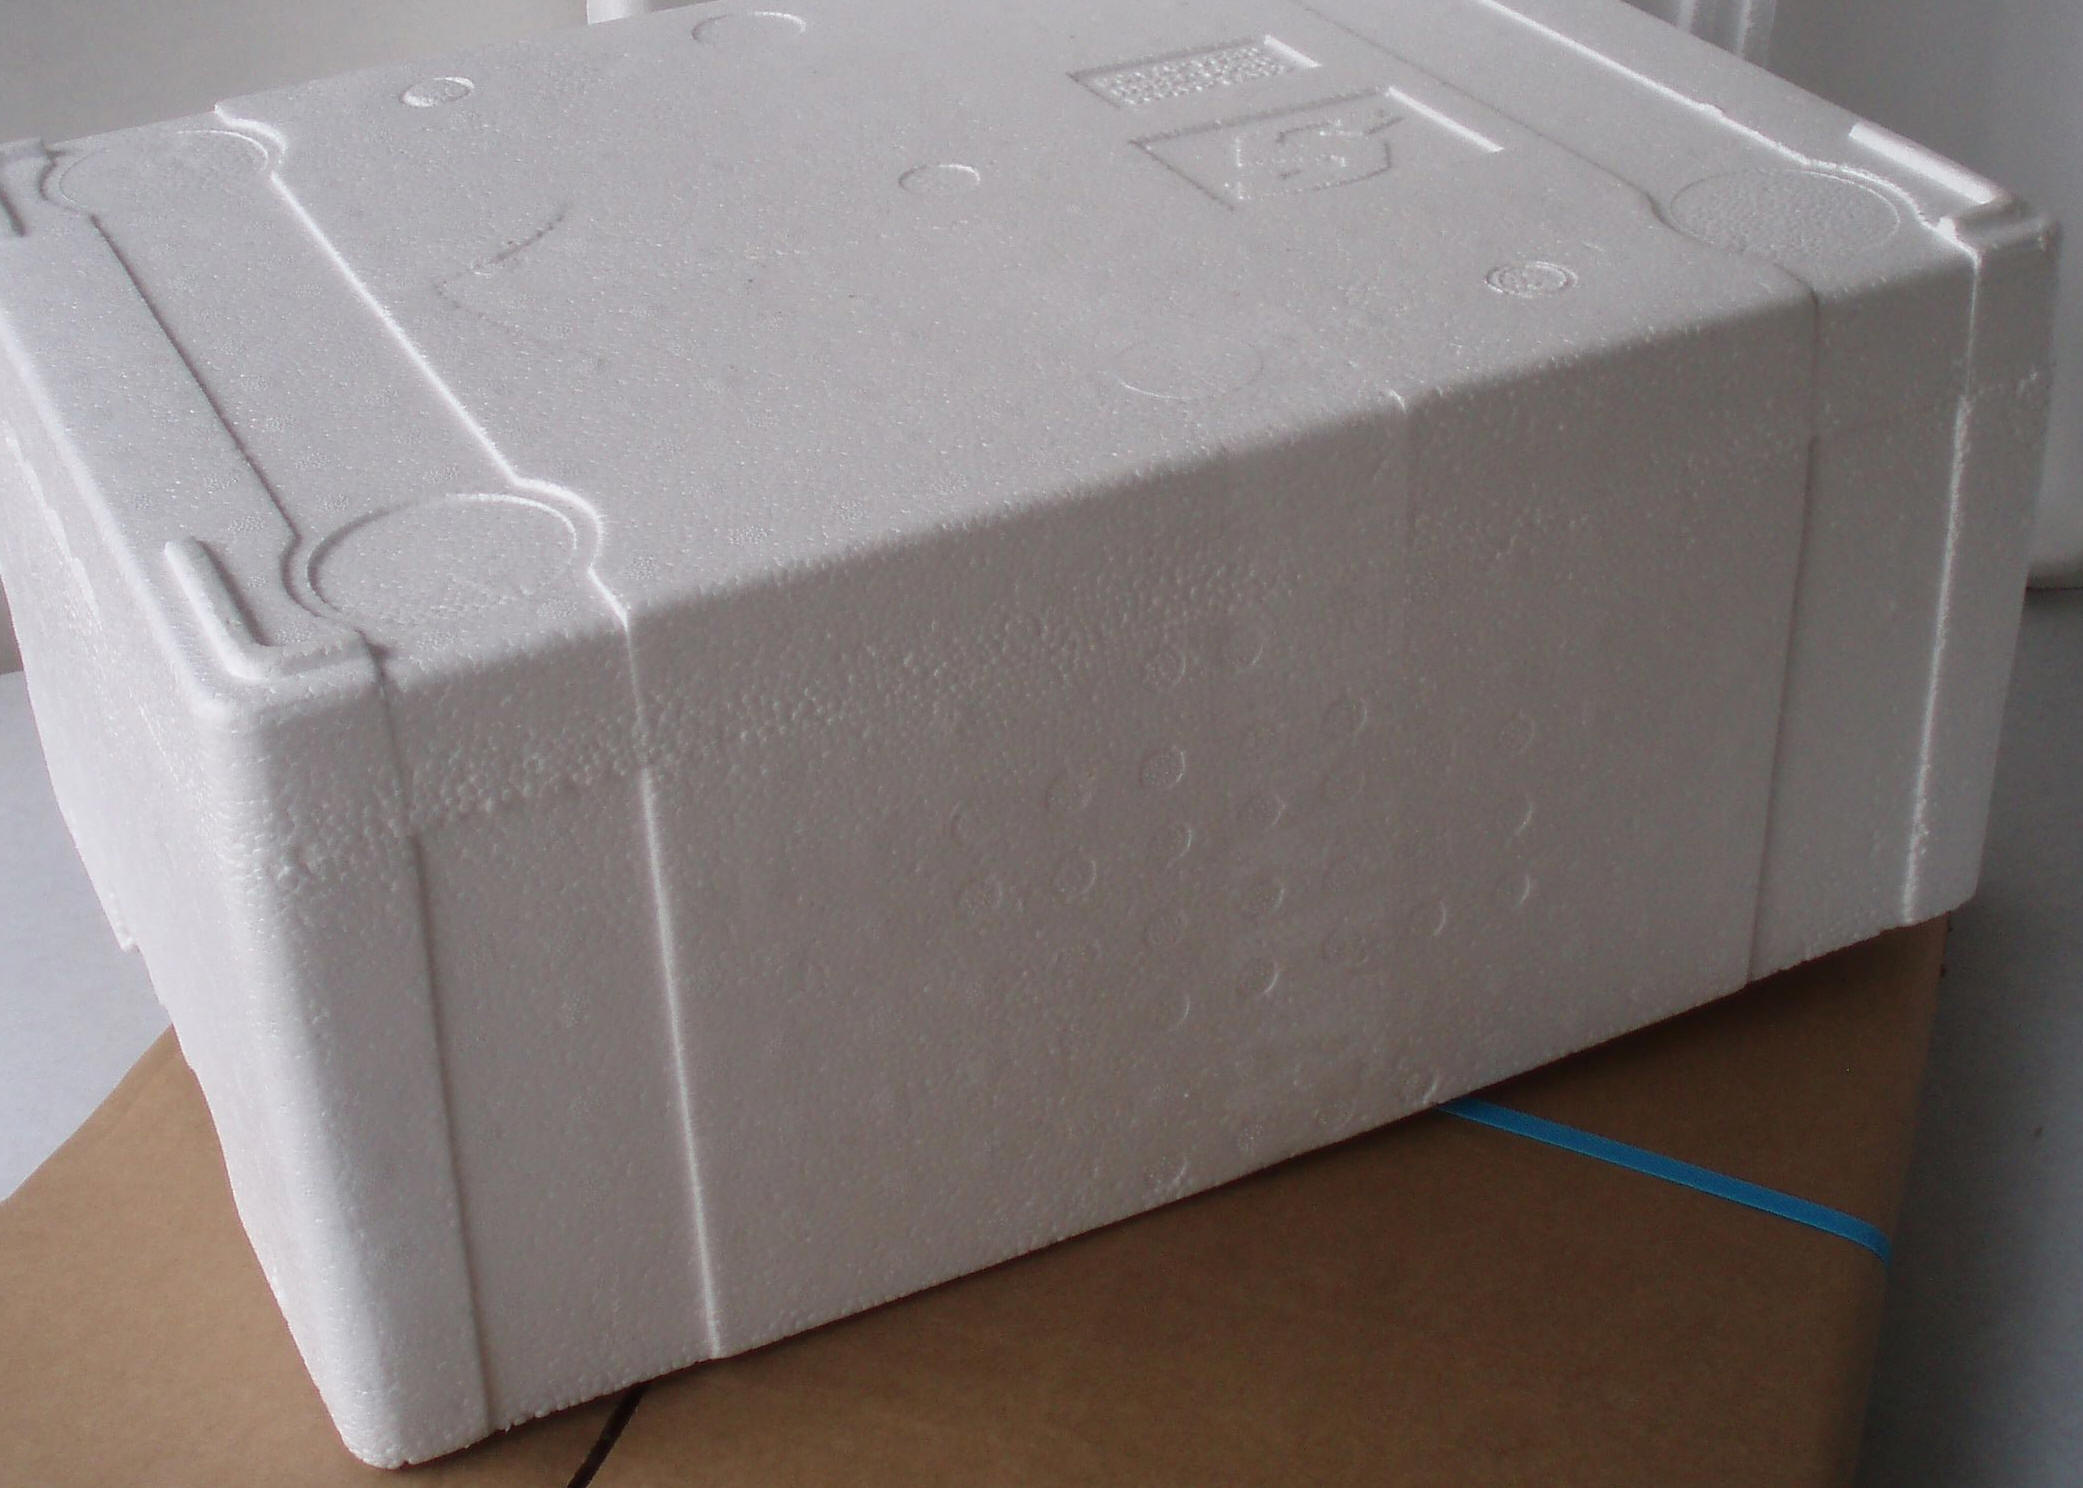 Polystyrene boxes with lids